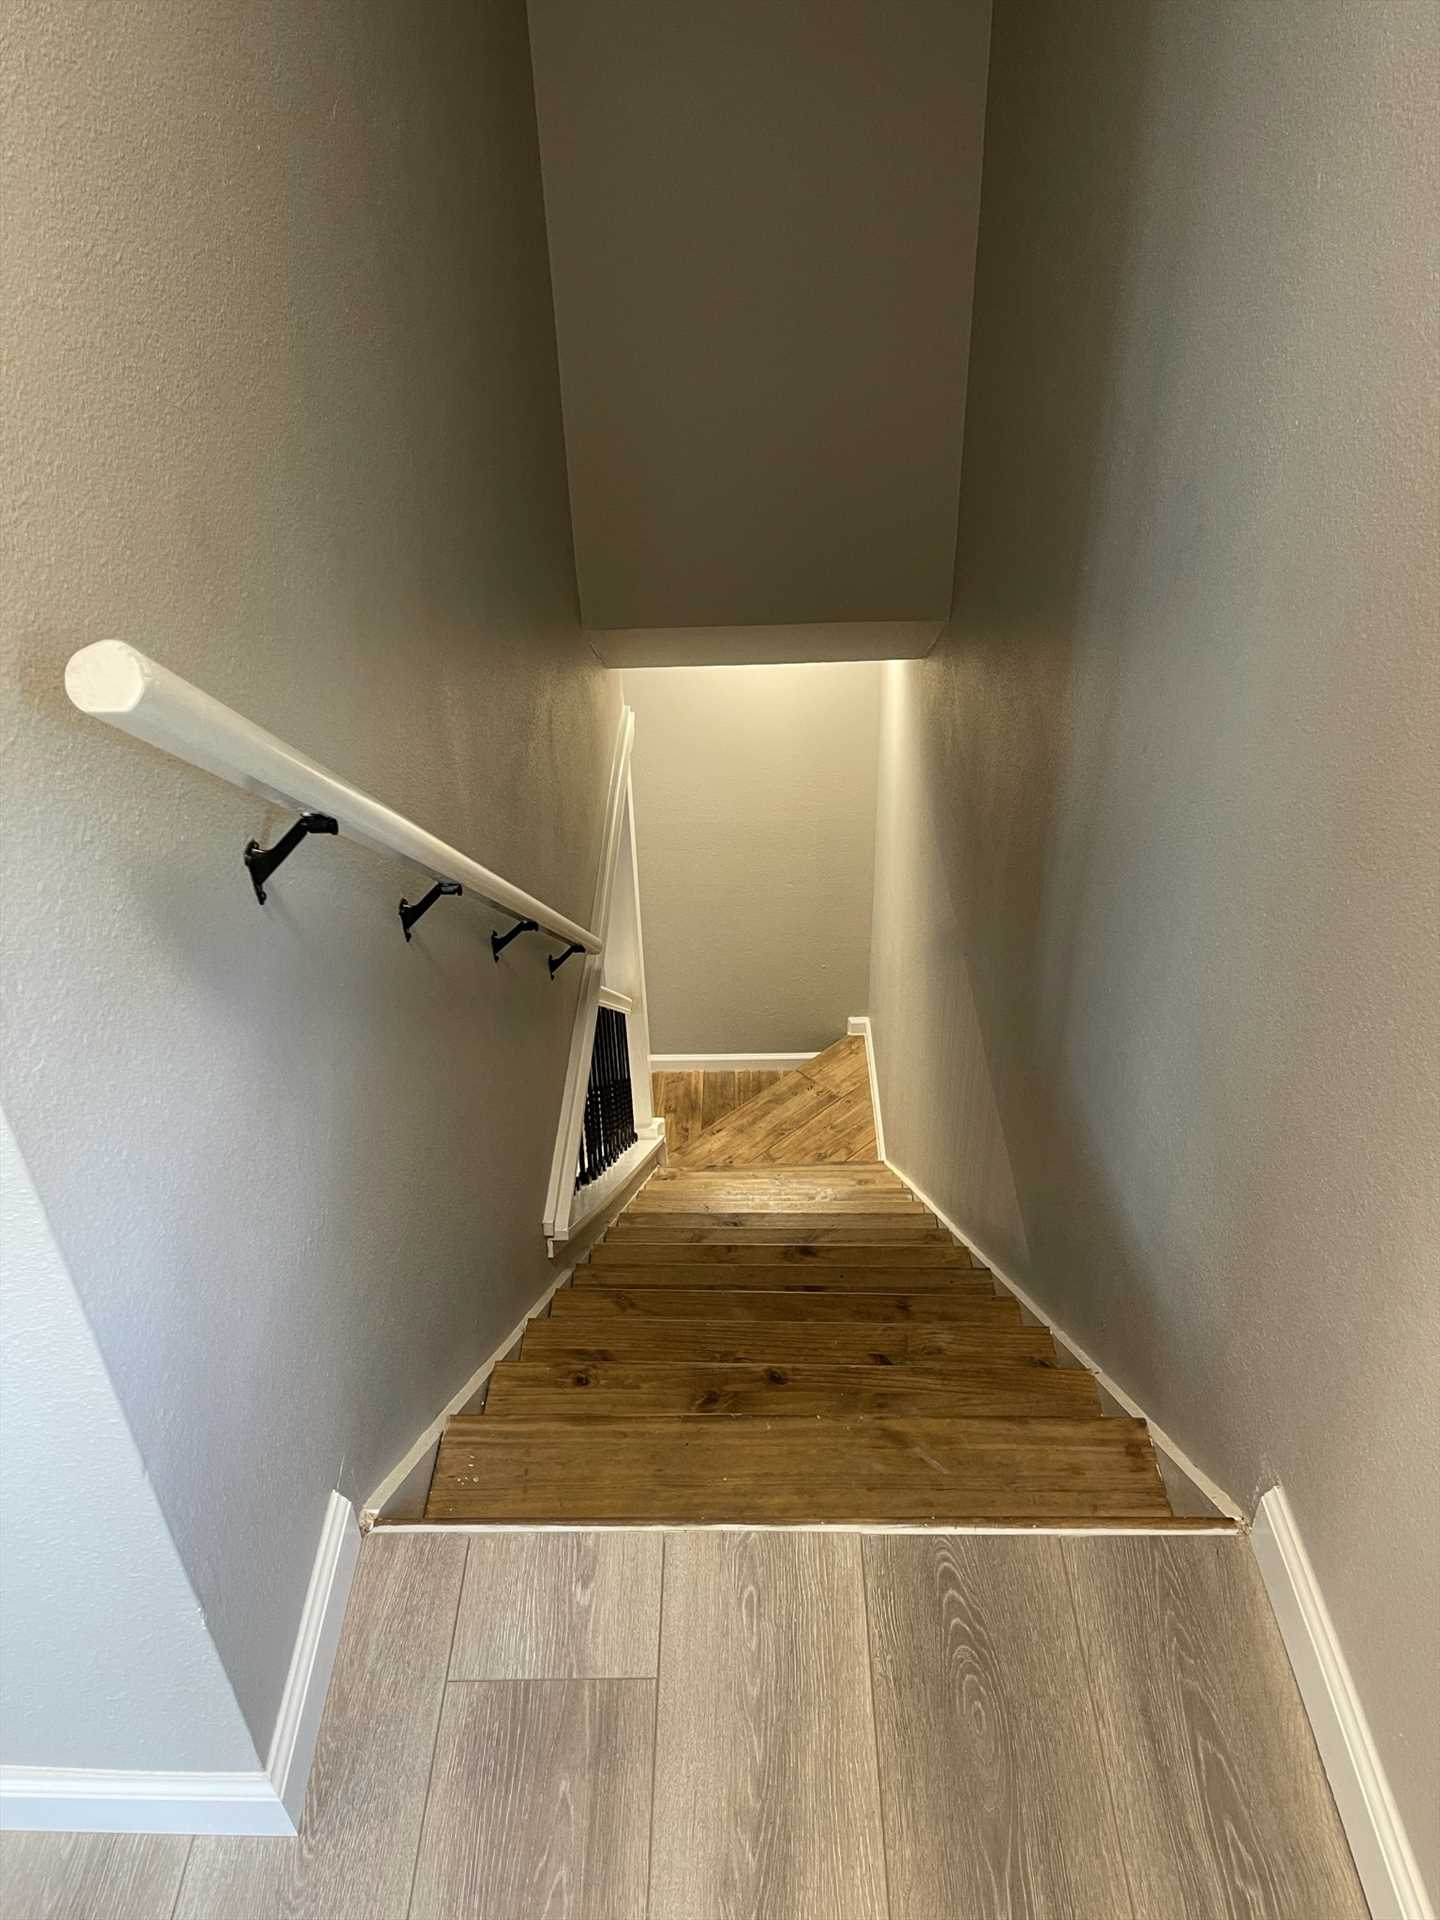 If you have folks in your group who'd like a moment of privacy, the bedrooms are conveniently located upstairs from the main living and kitchen areas.